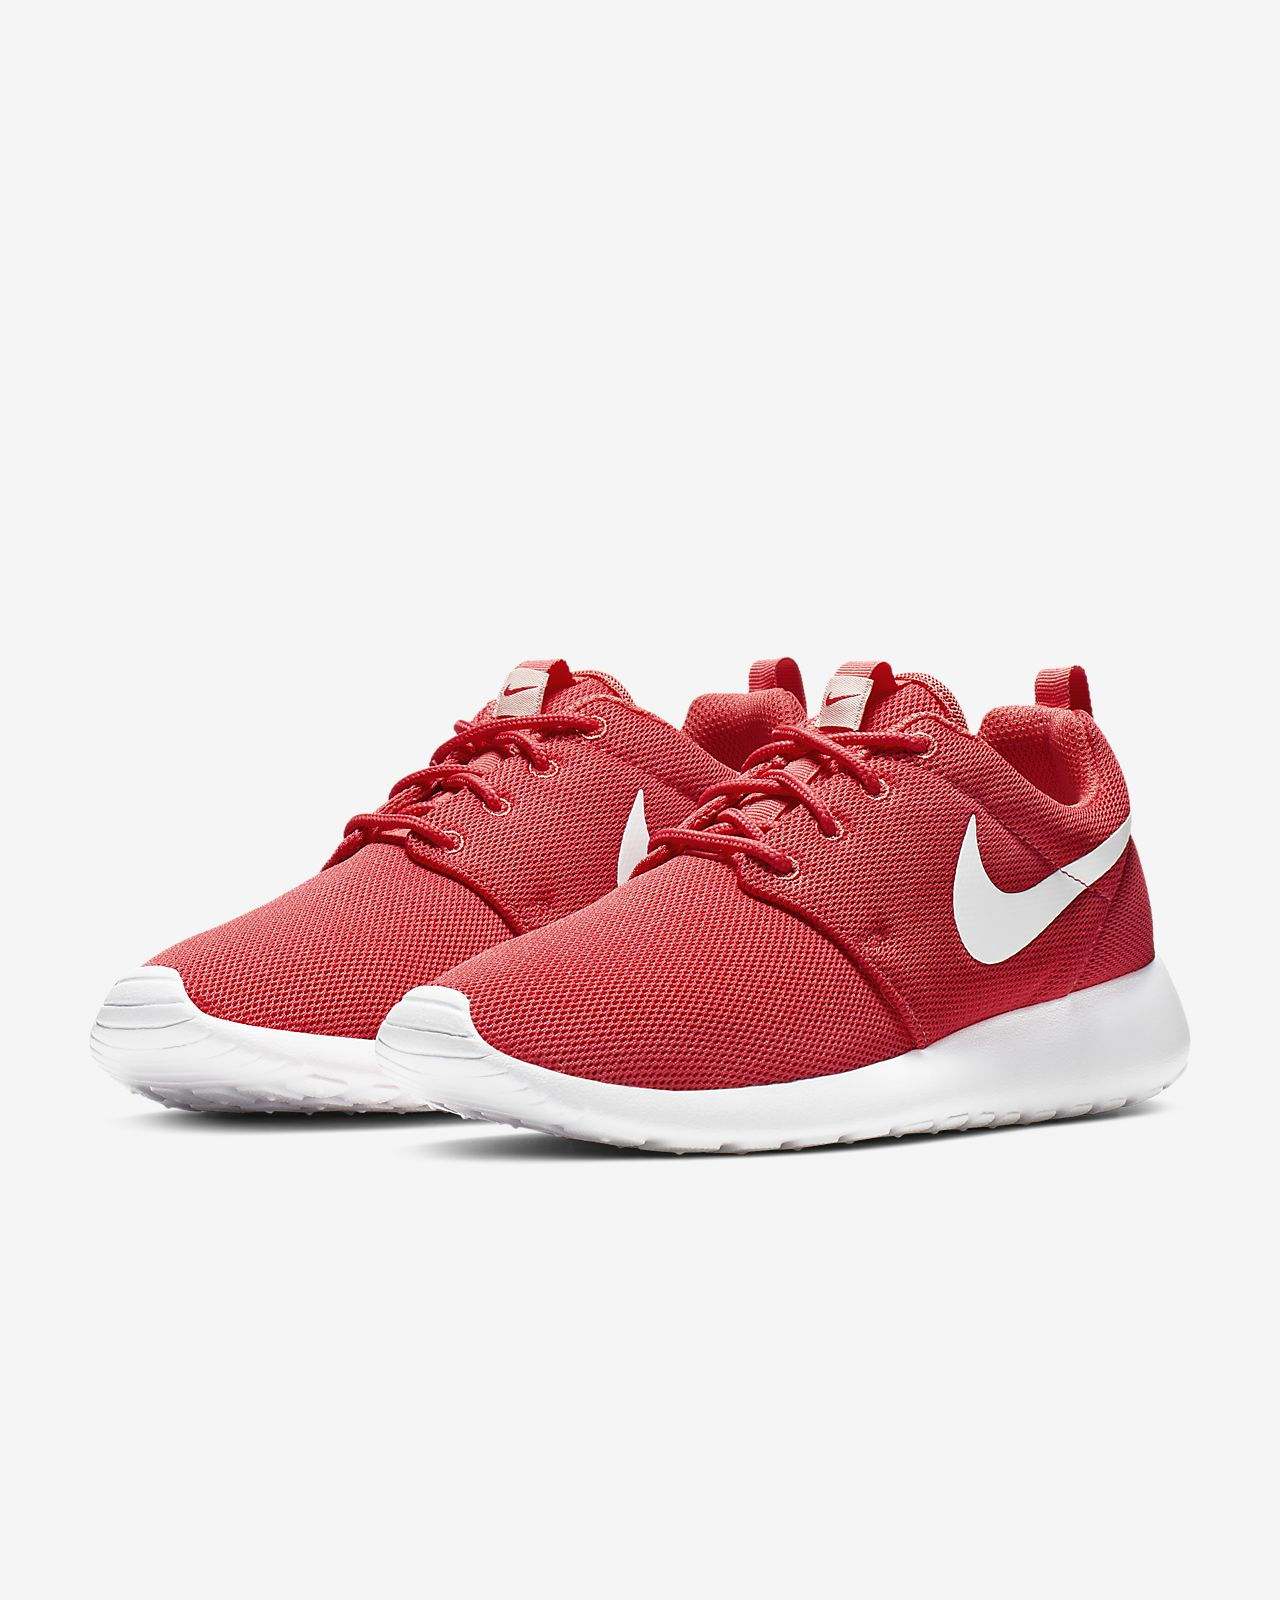 premium selection ffdc2 e18fb ... Nike Roshe One Women s Shoe